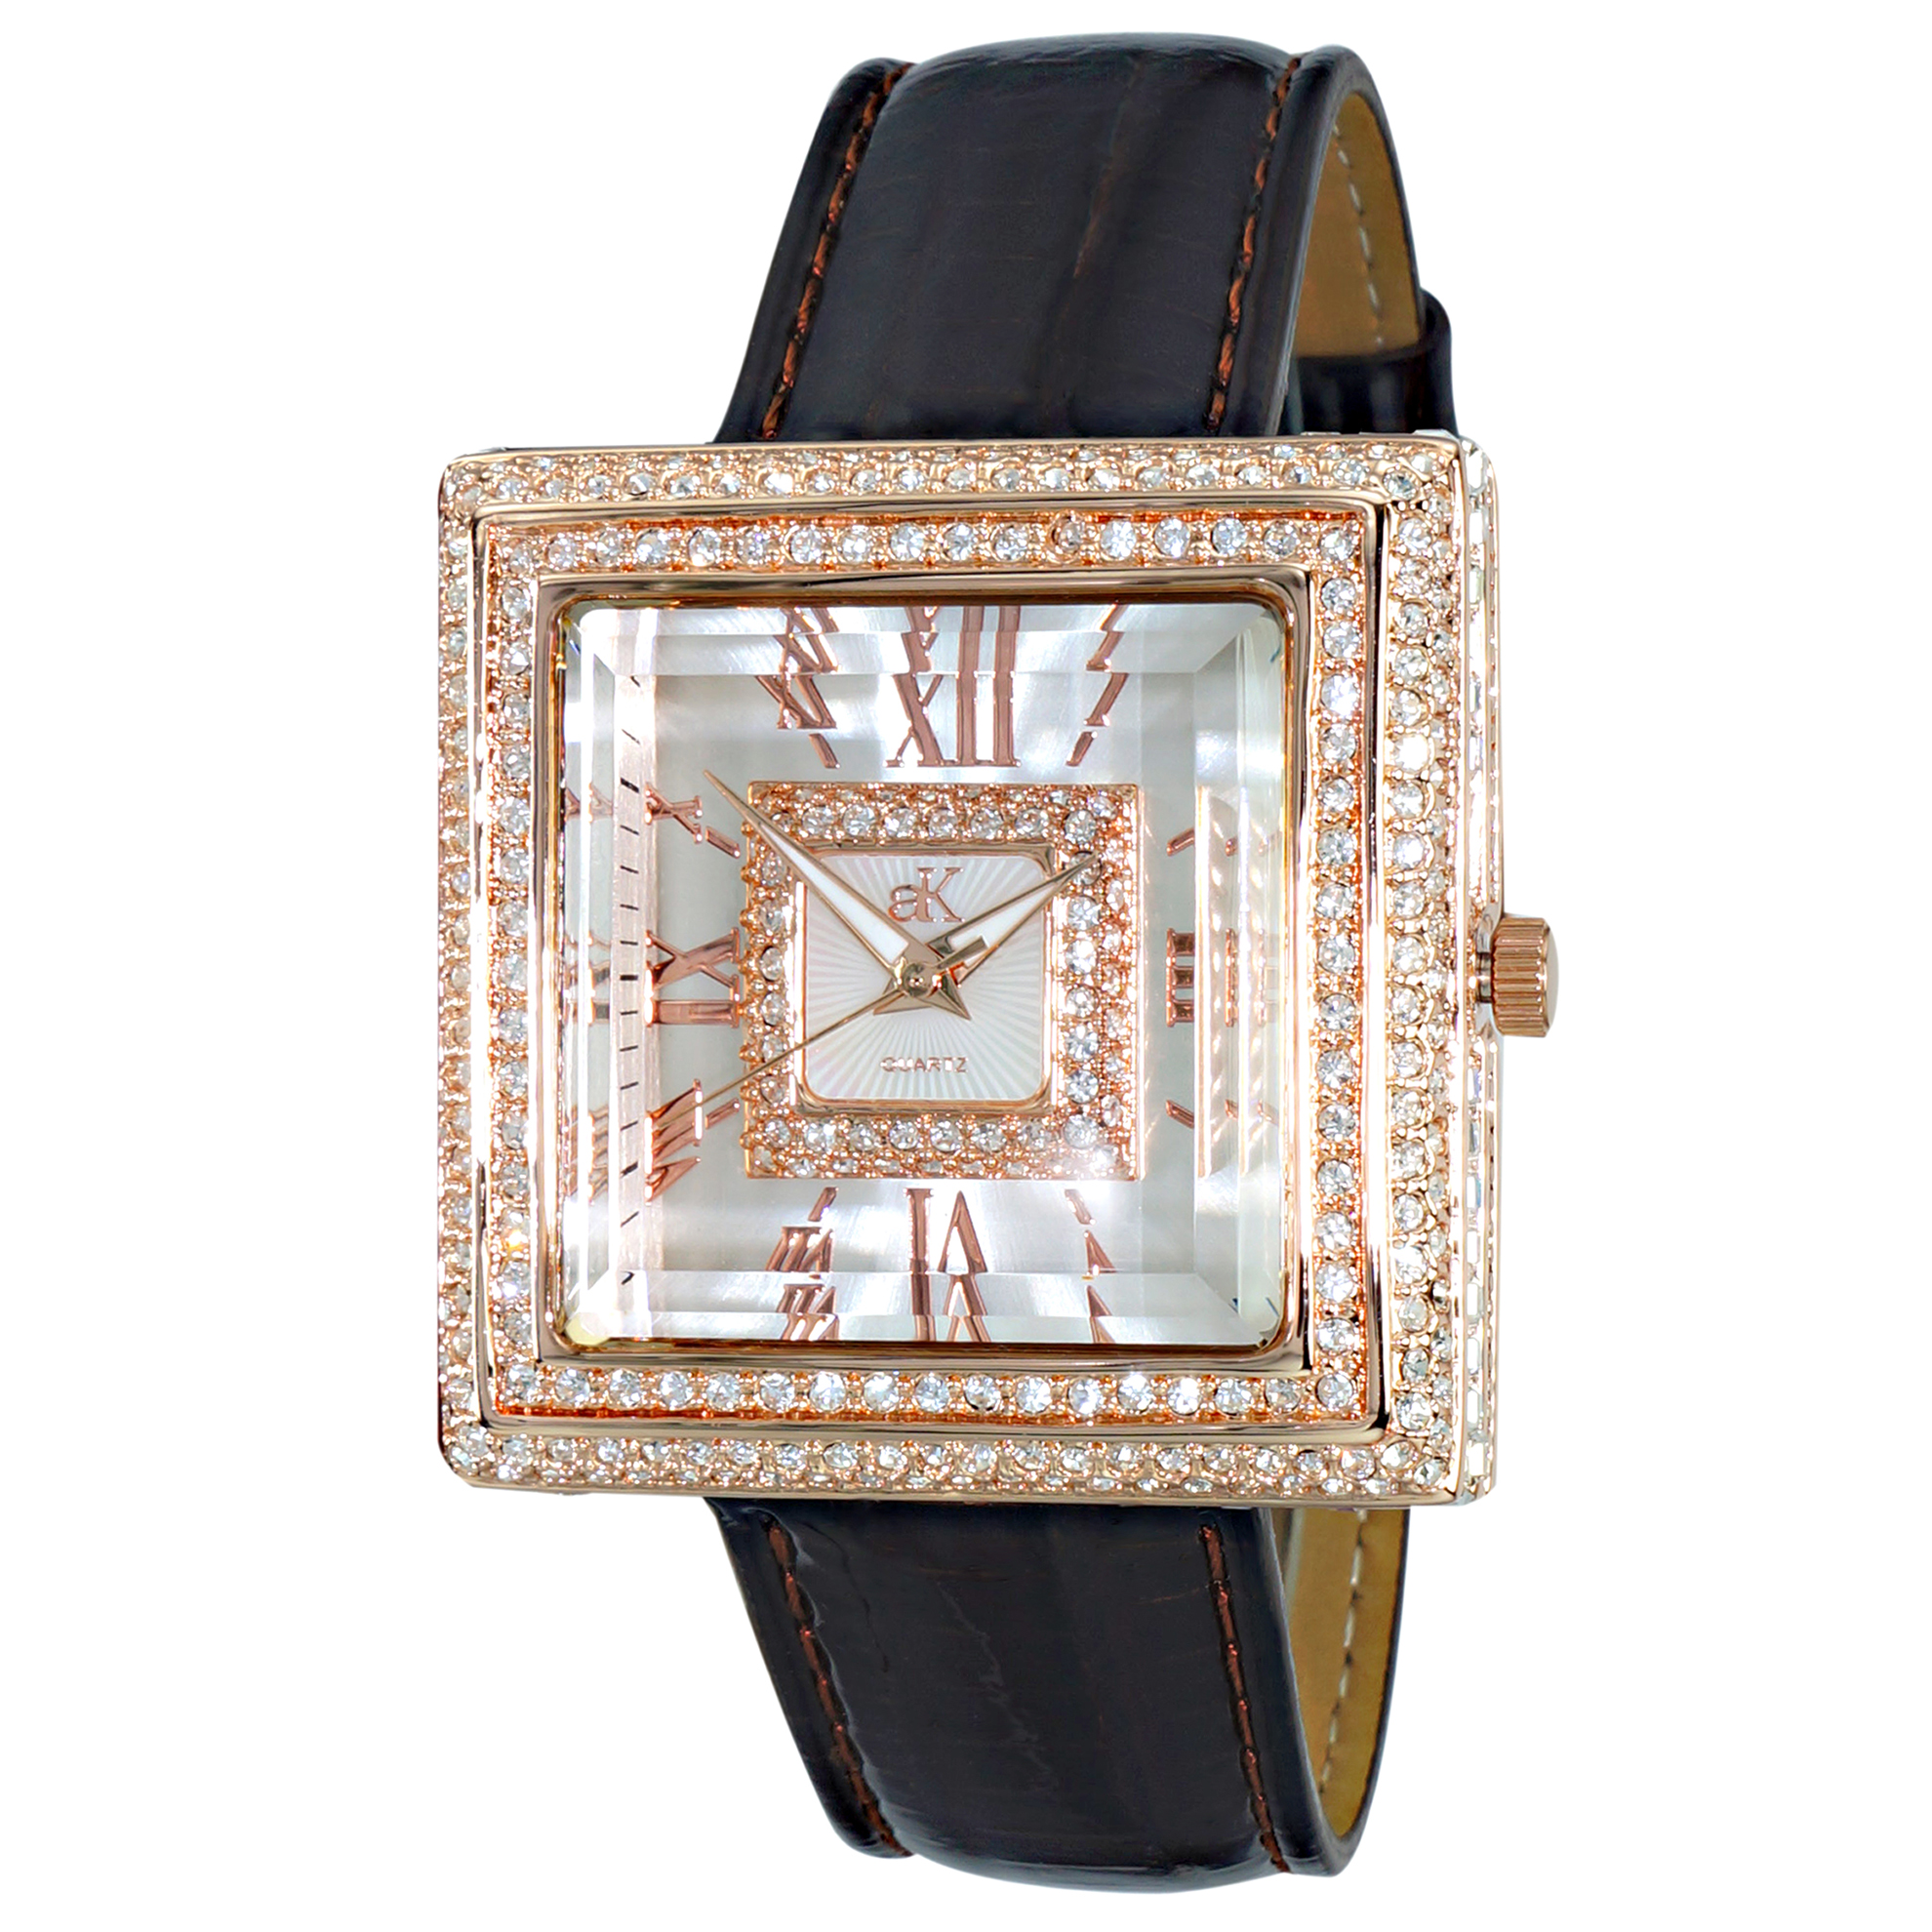 Adee Kaye AK25-LRG Adee Kaye Ladies Milan Collection 370 Austrian Crystals Rose Gold Black Leather Band